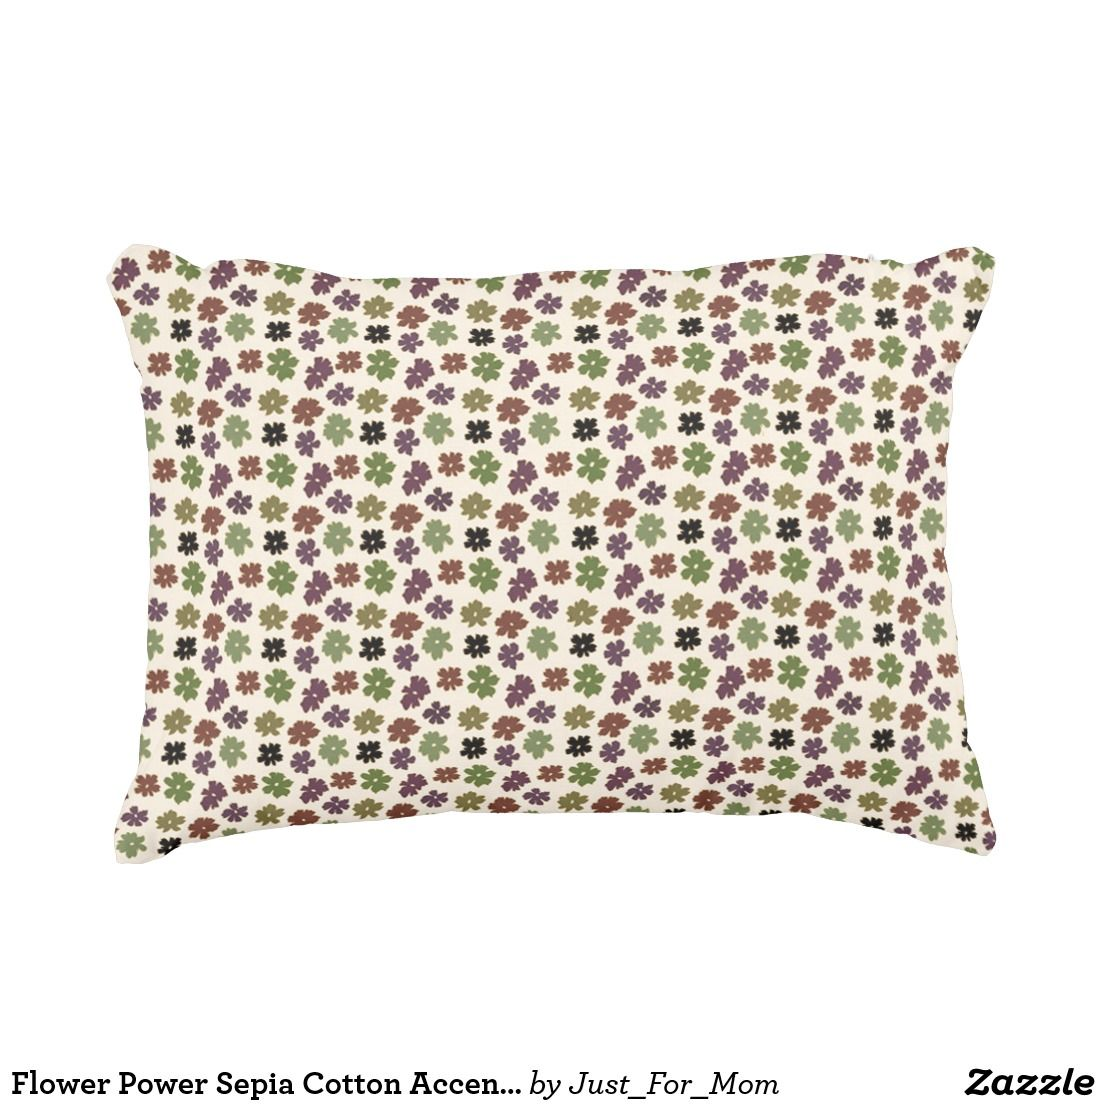 Flower Power Sepia Cotton Accent Pillow by Janz